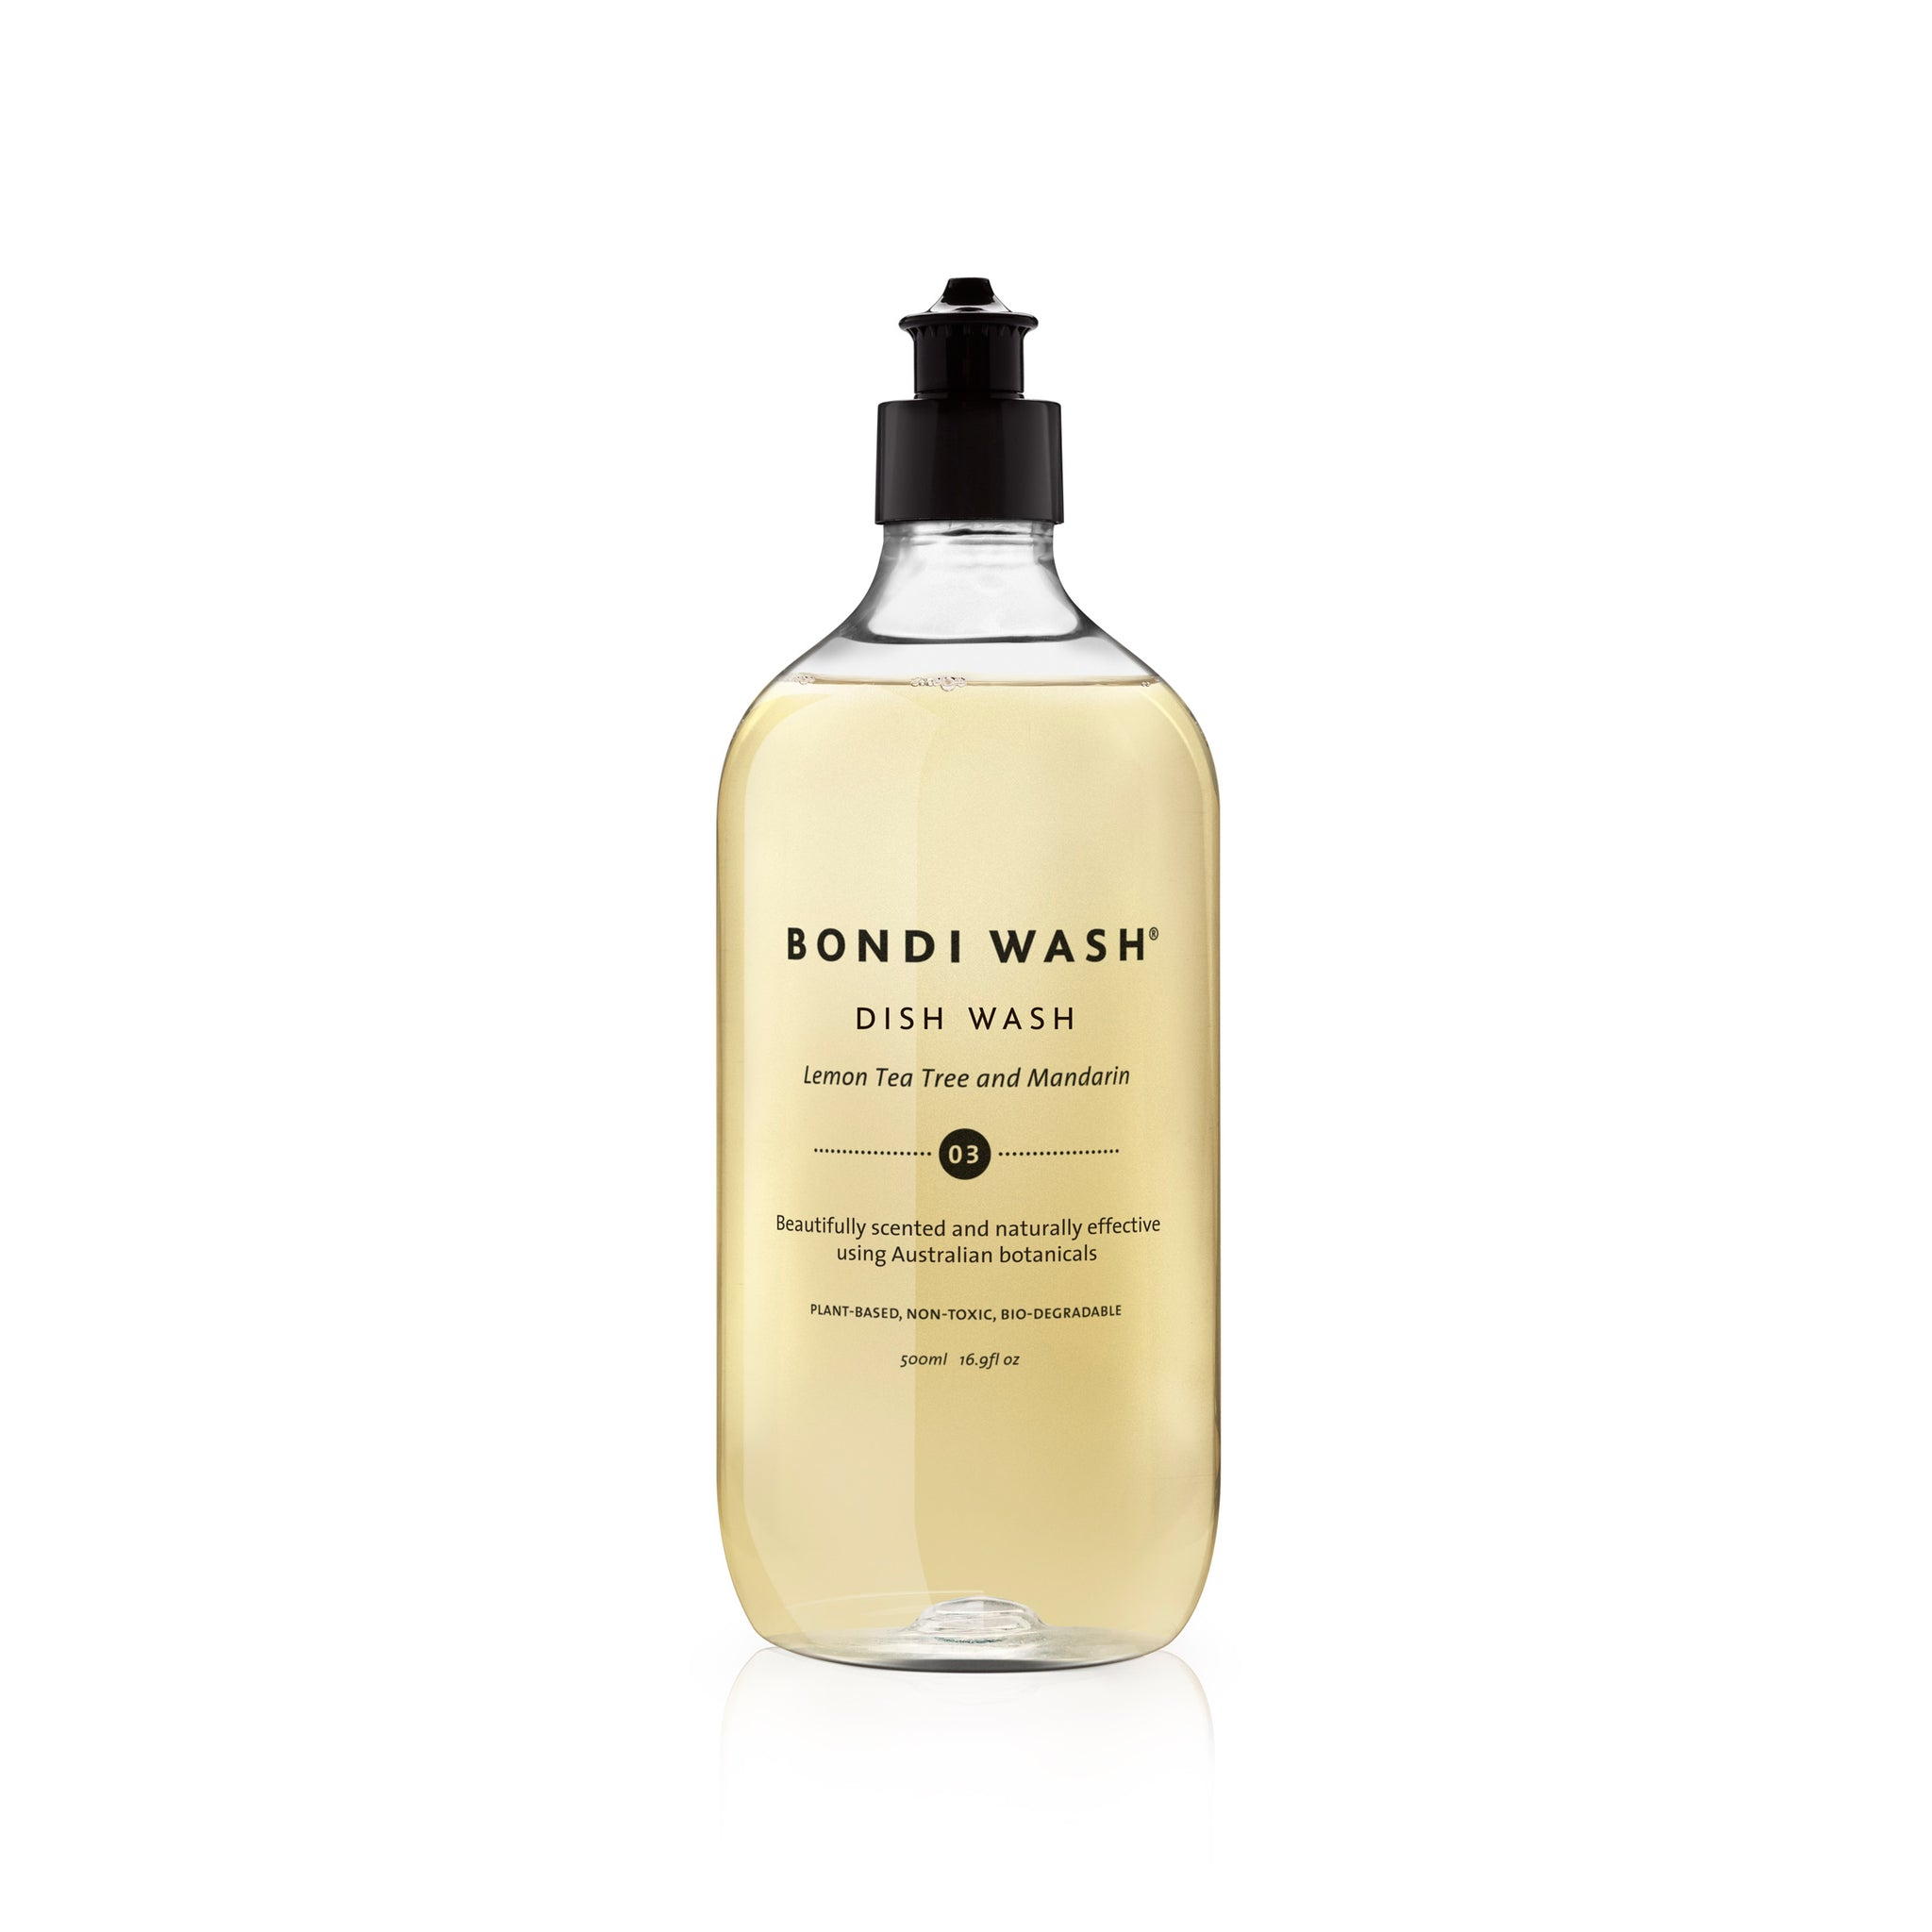 Dish Wash - Lemon Tea Tree & Mandarin